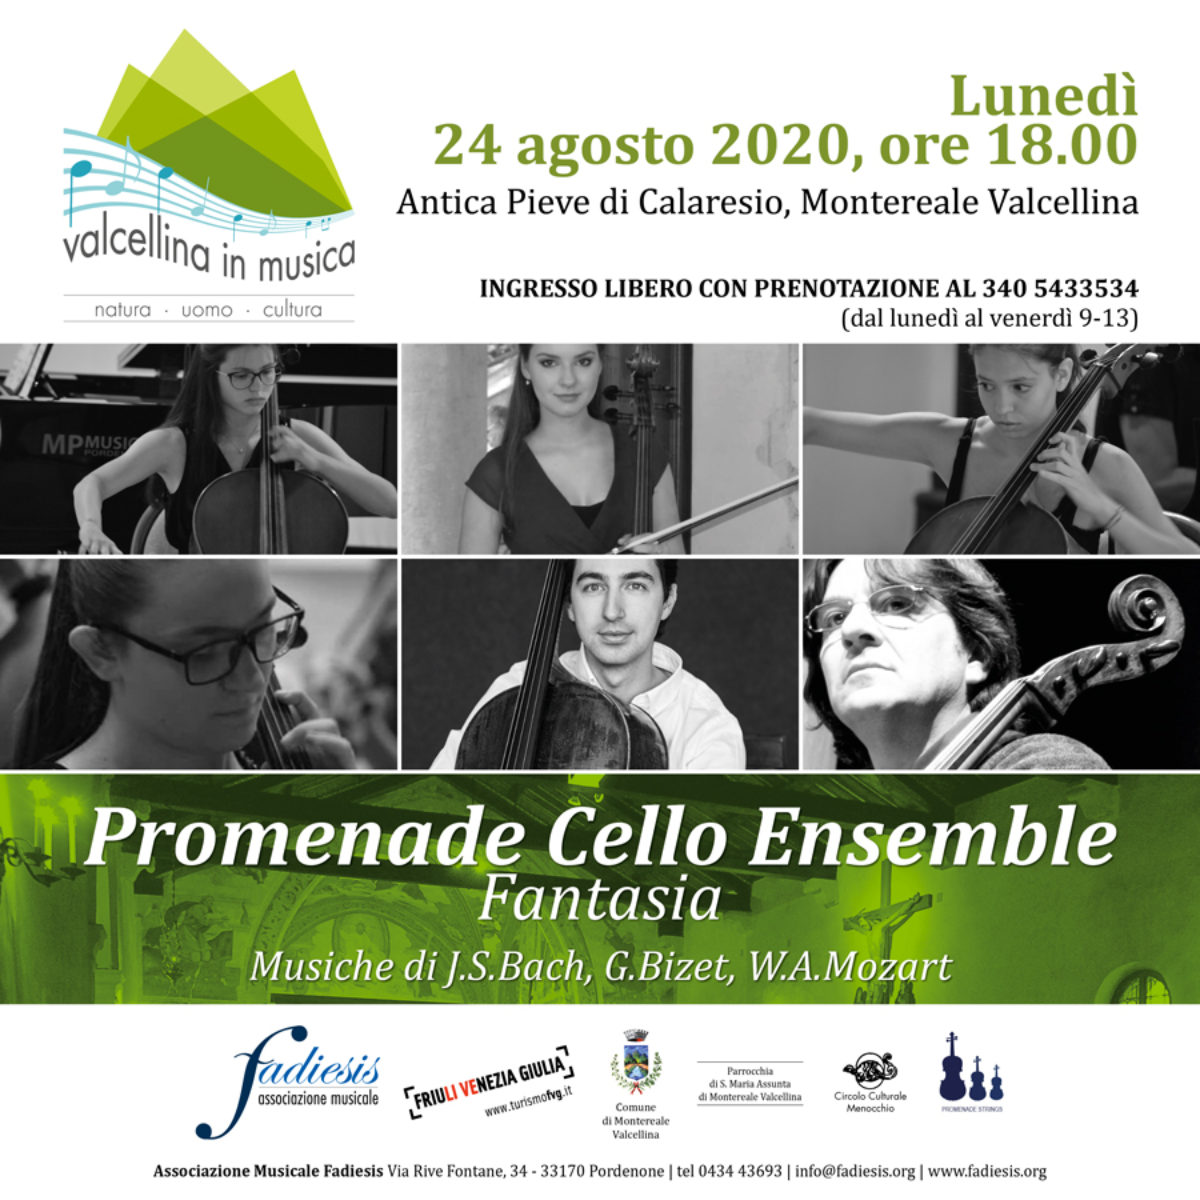 Promenade Cello Ensemble